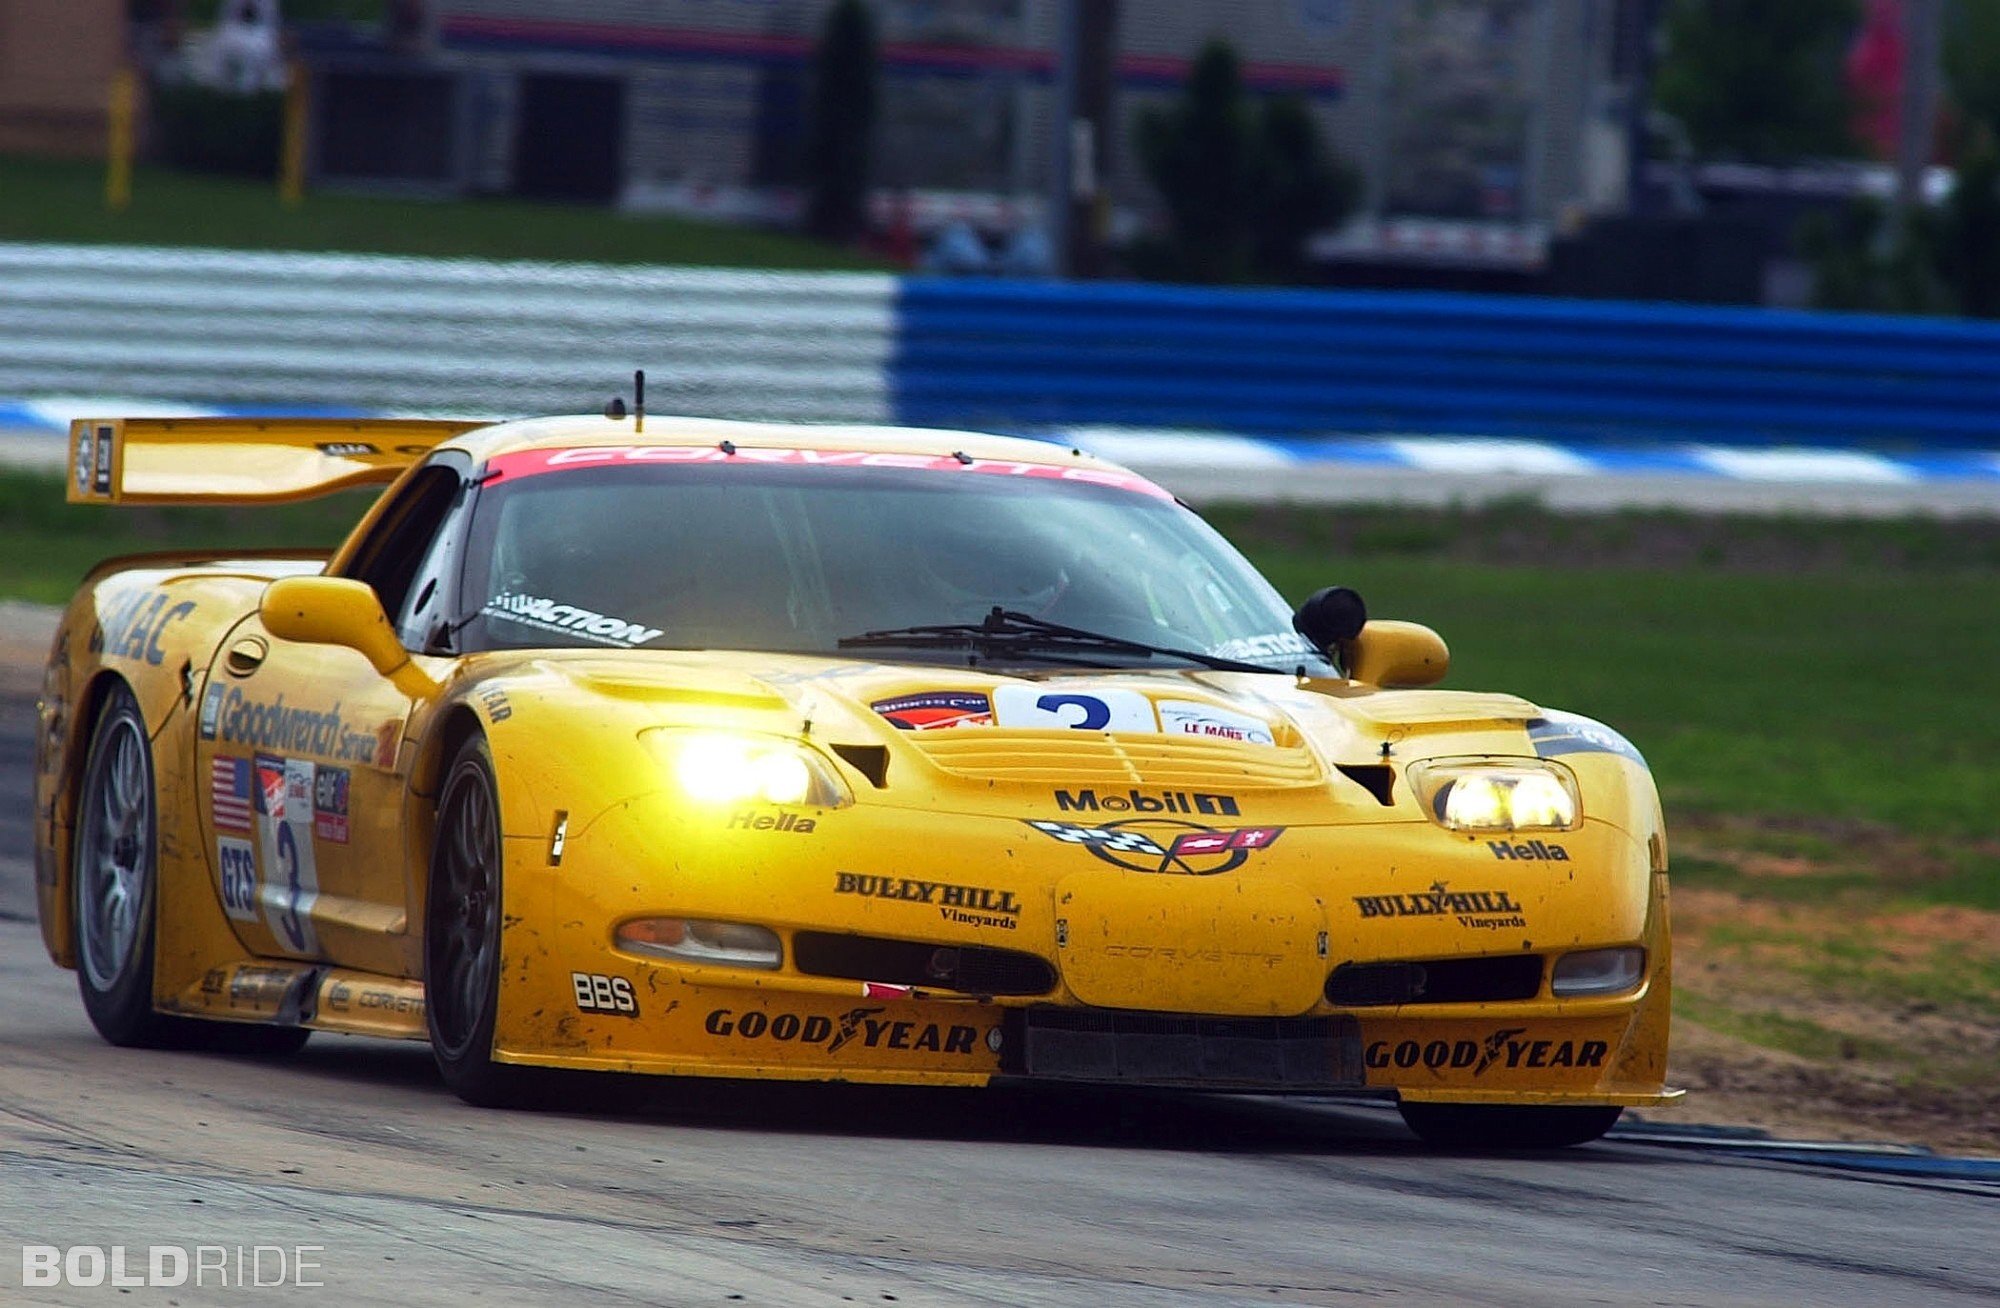 2000x1308 ... Dale Earnhardt Jr. Is. 2001 Chevrolet Corvette C5 R 20 Supercar  Supercars Race Racing O Wallpaper  88418 WallpaperUP ...